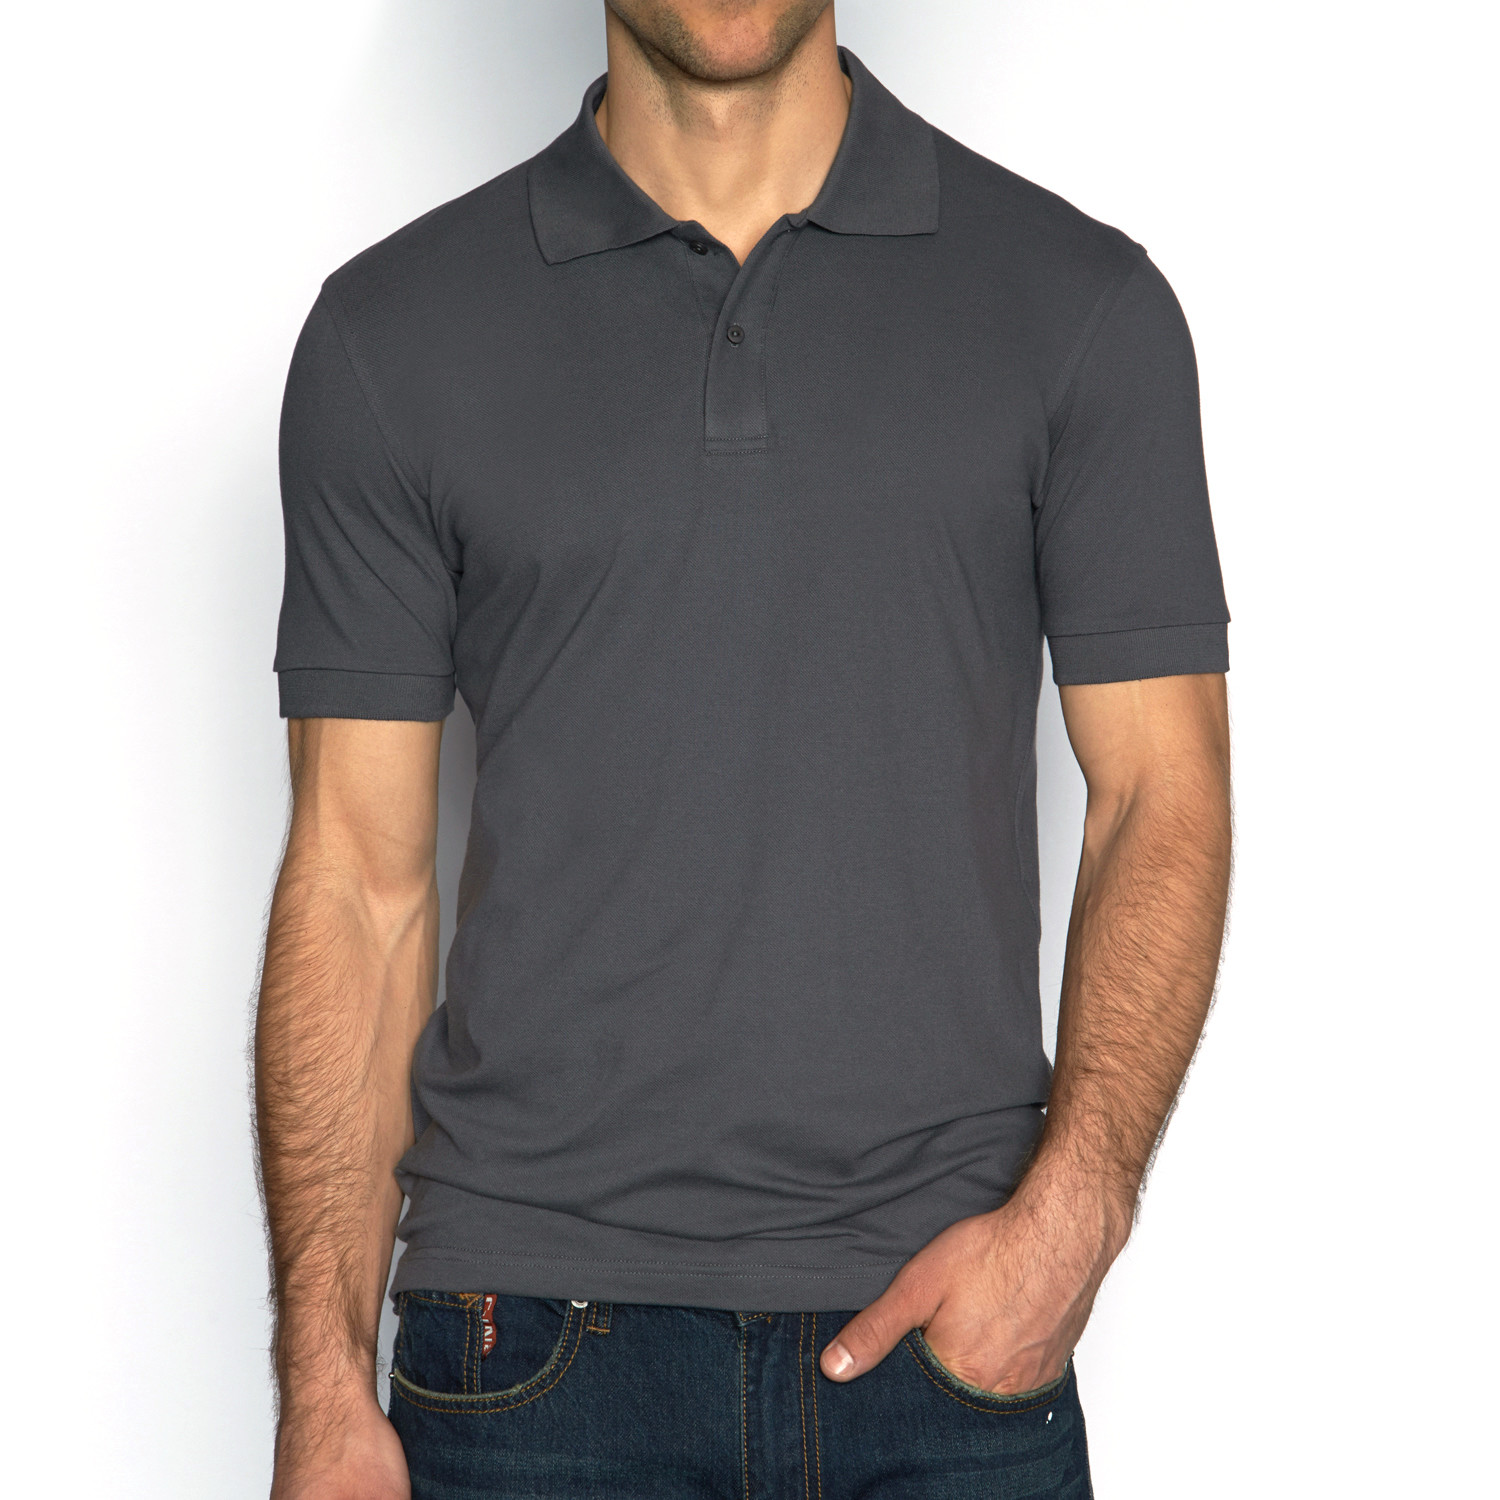 Polo shirt iron l fashion clearance touch of modern for Polo shirts clearance sale